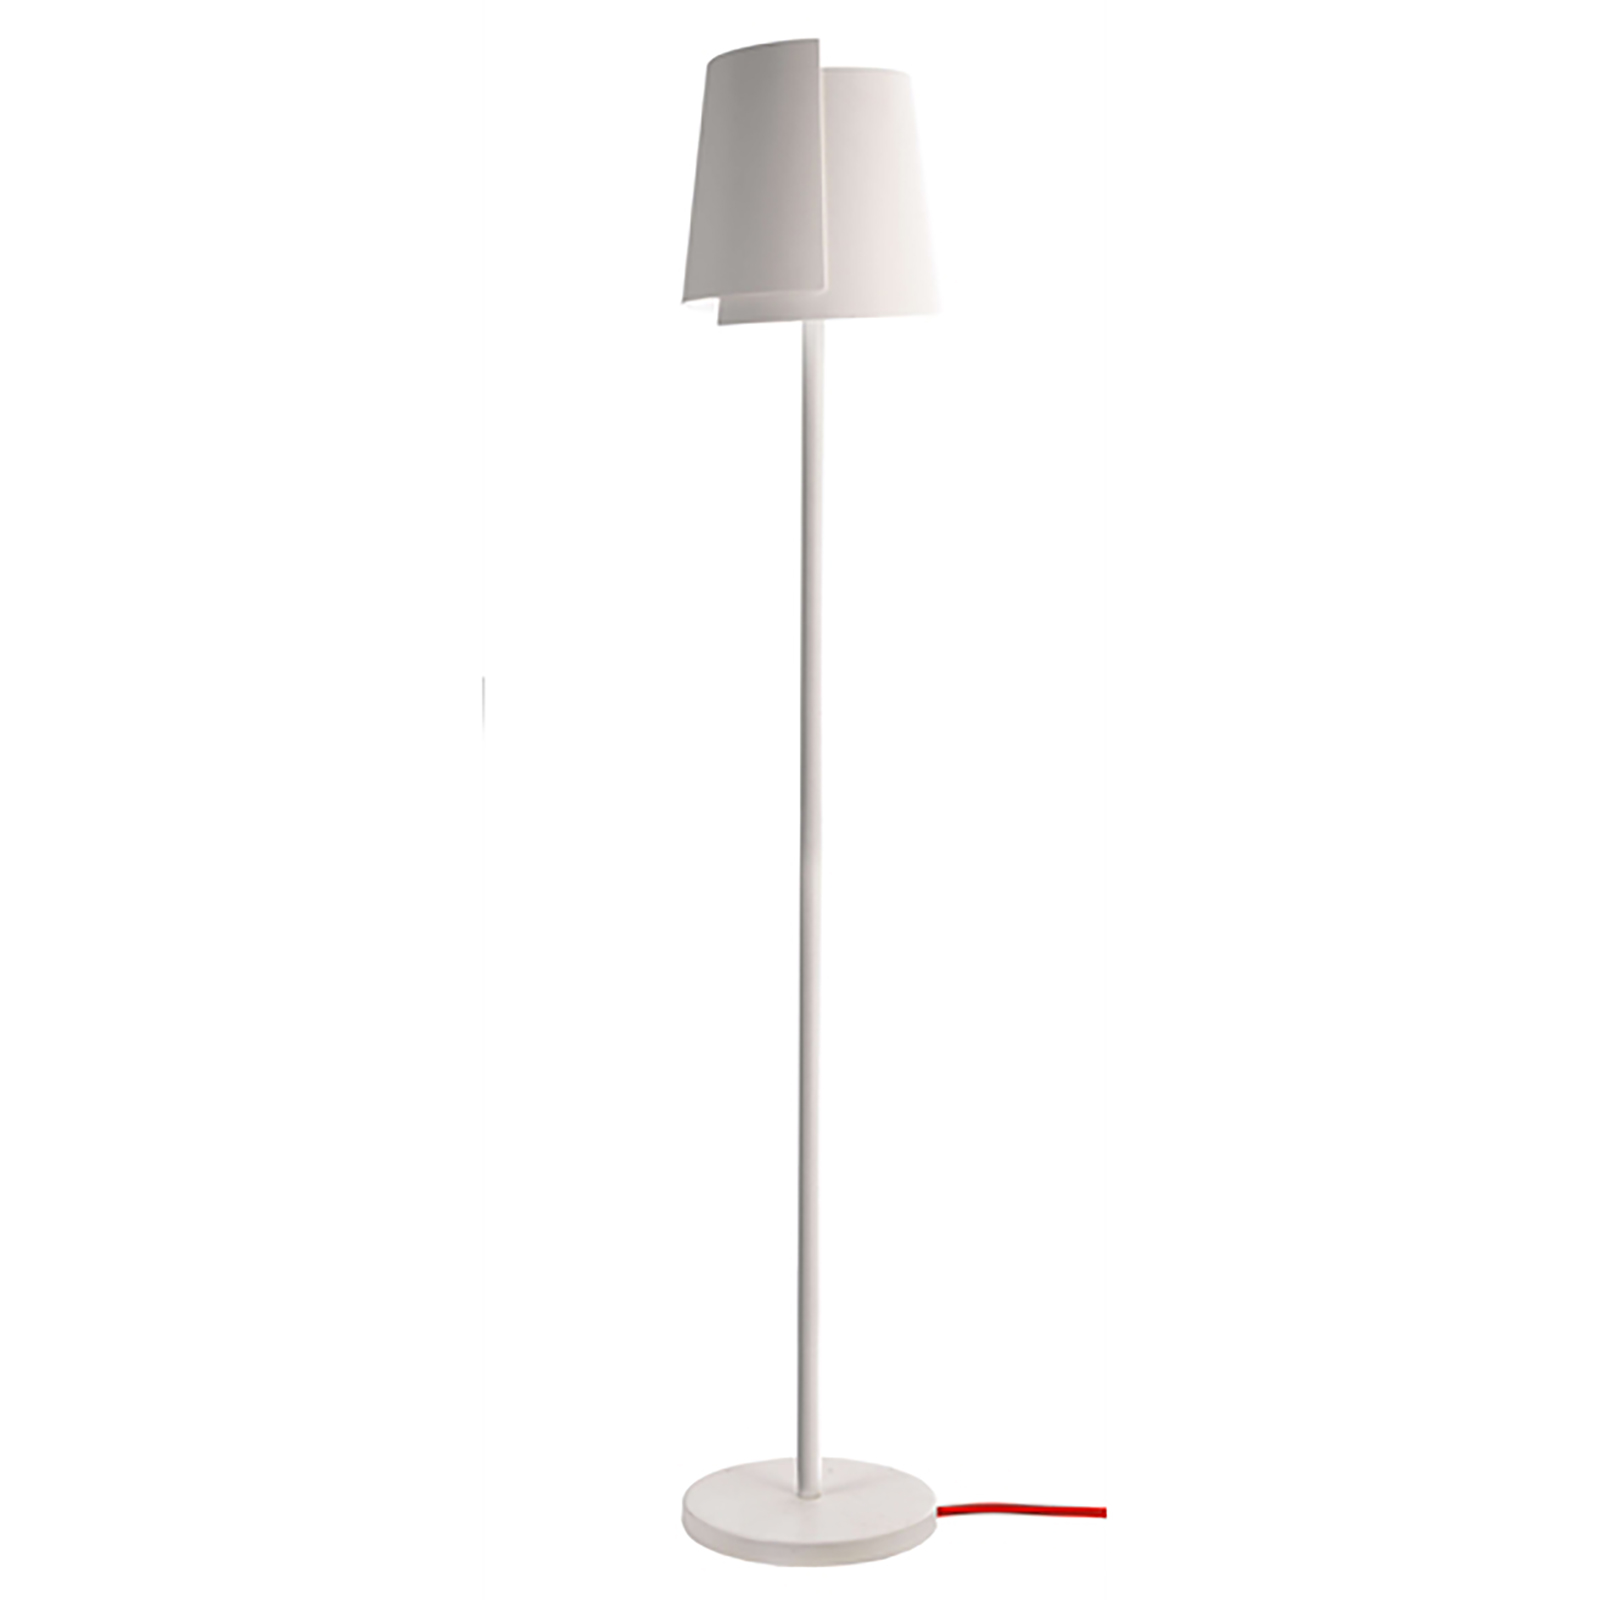 LED lamp ground floor plaster floor lamp modern E27 light hotel office, 230V